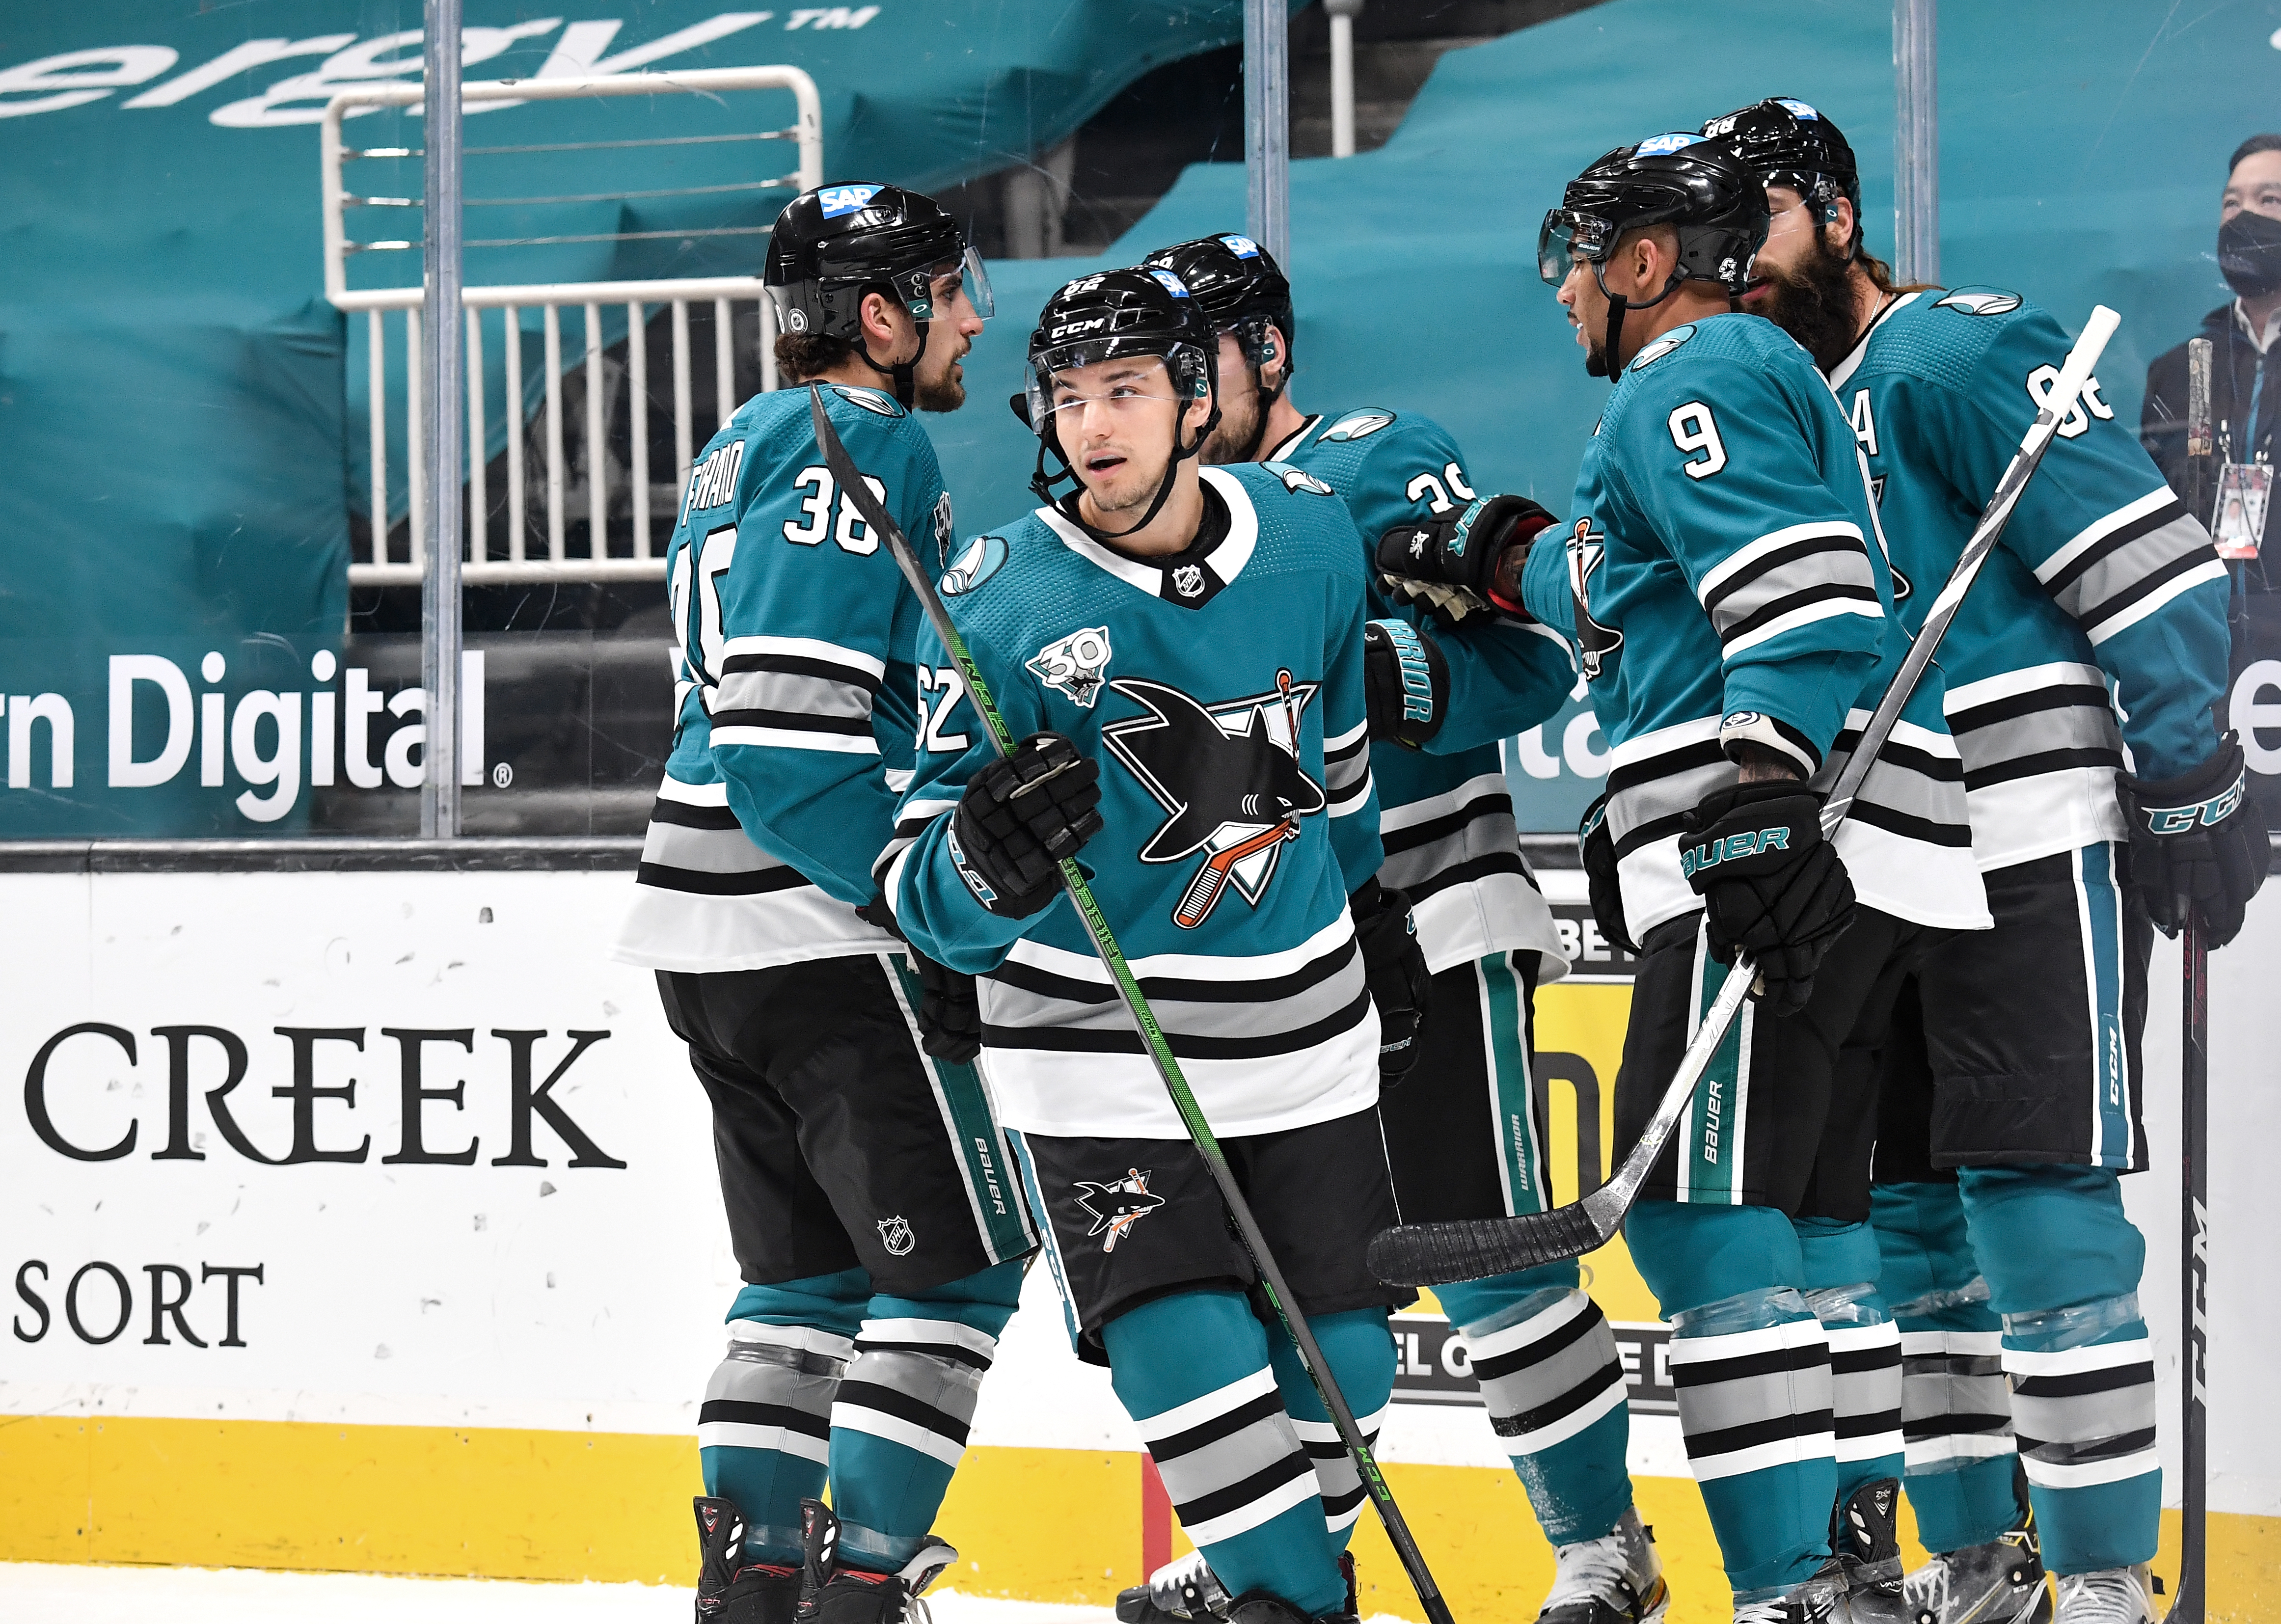 Kevin Labanc #62, Brent Burns #88, Logan Couture #39, Mario Ferraro #38 and Evander Kane #9 of the San Jose Sharks celebrate scoring a goal against the Los Angeles Kings at SAP Center on April 9, 2021 in San Jose, California.